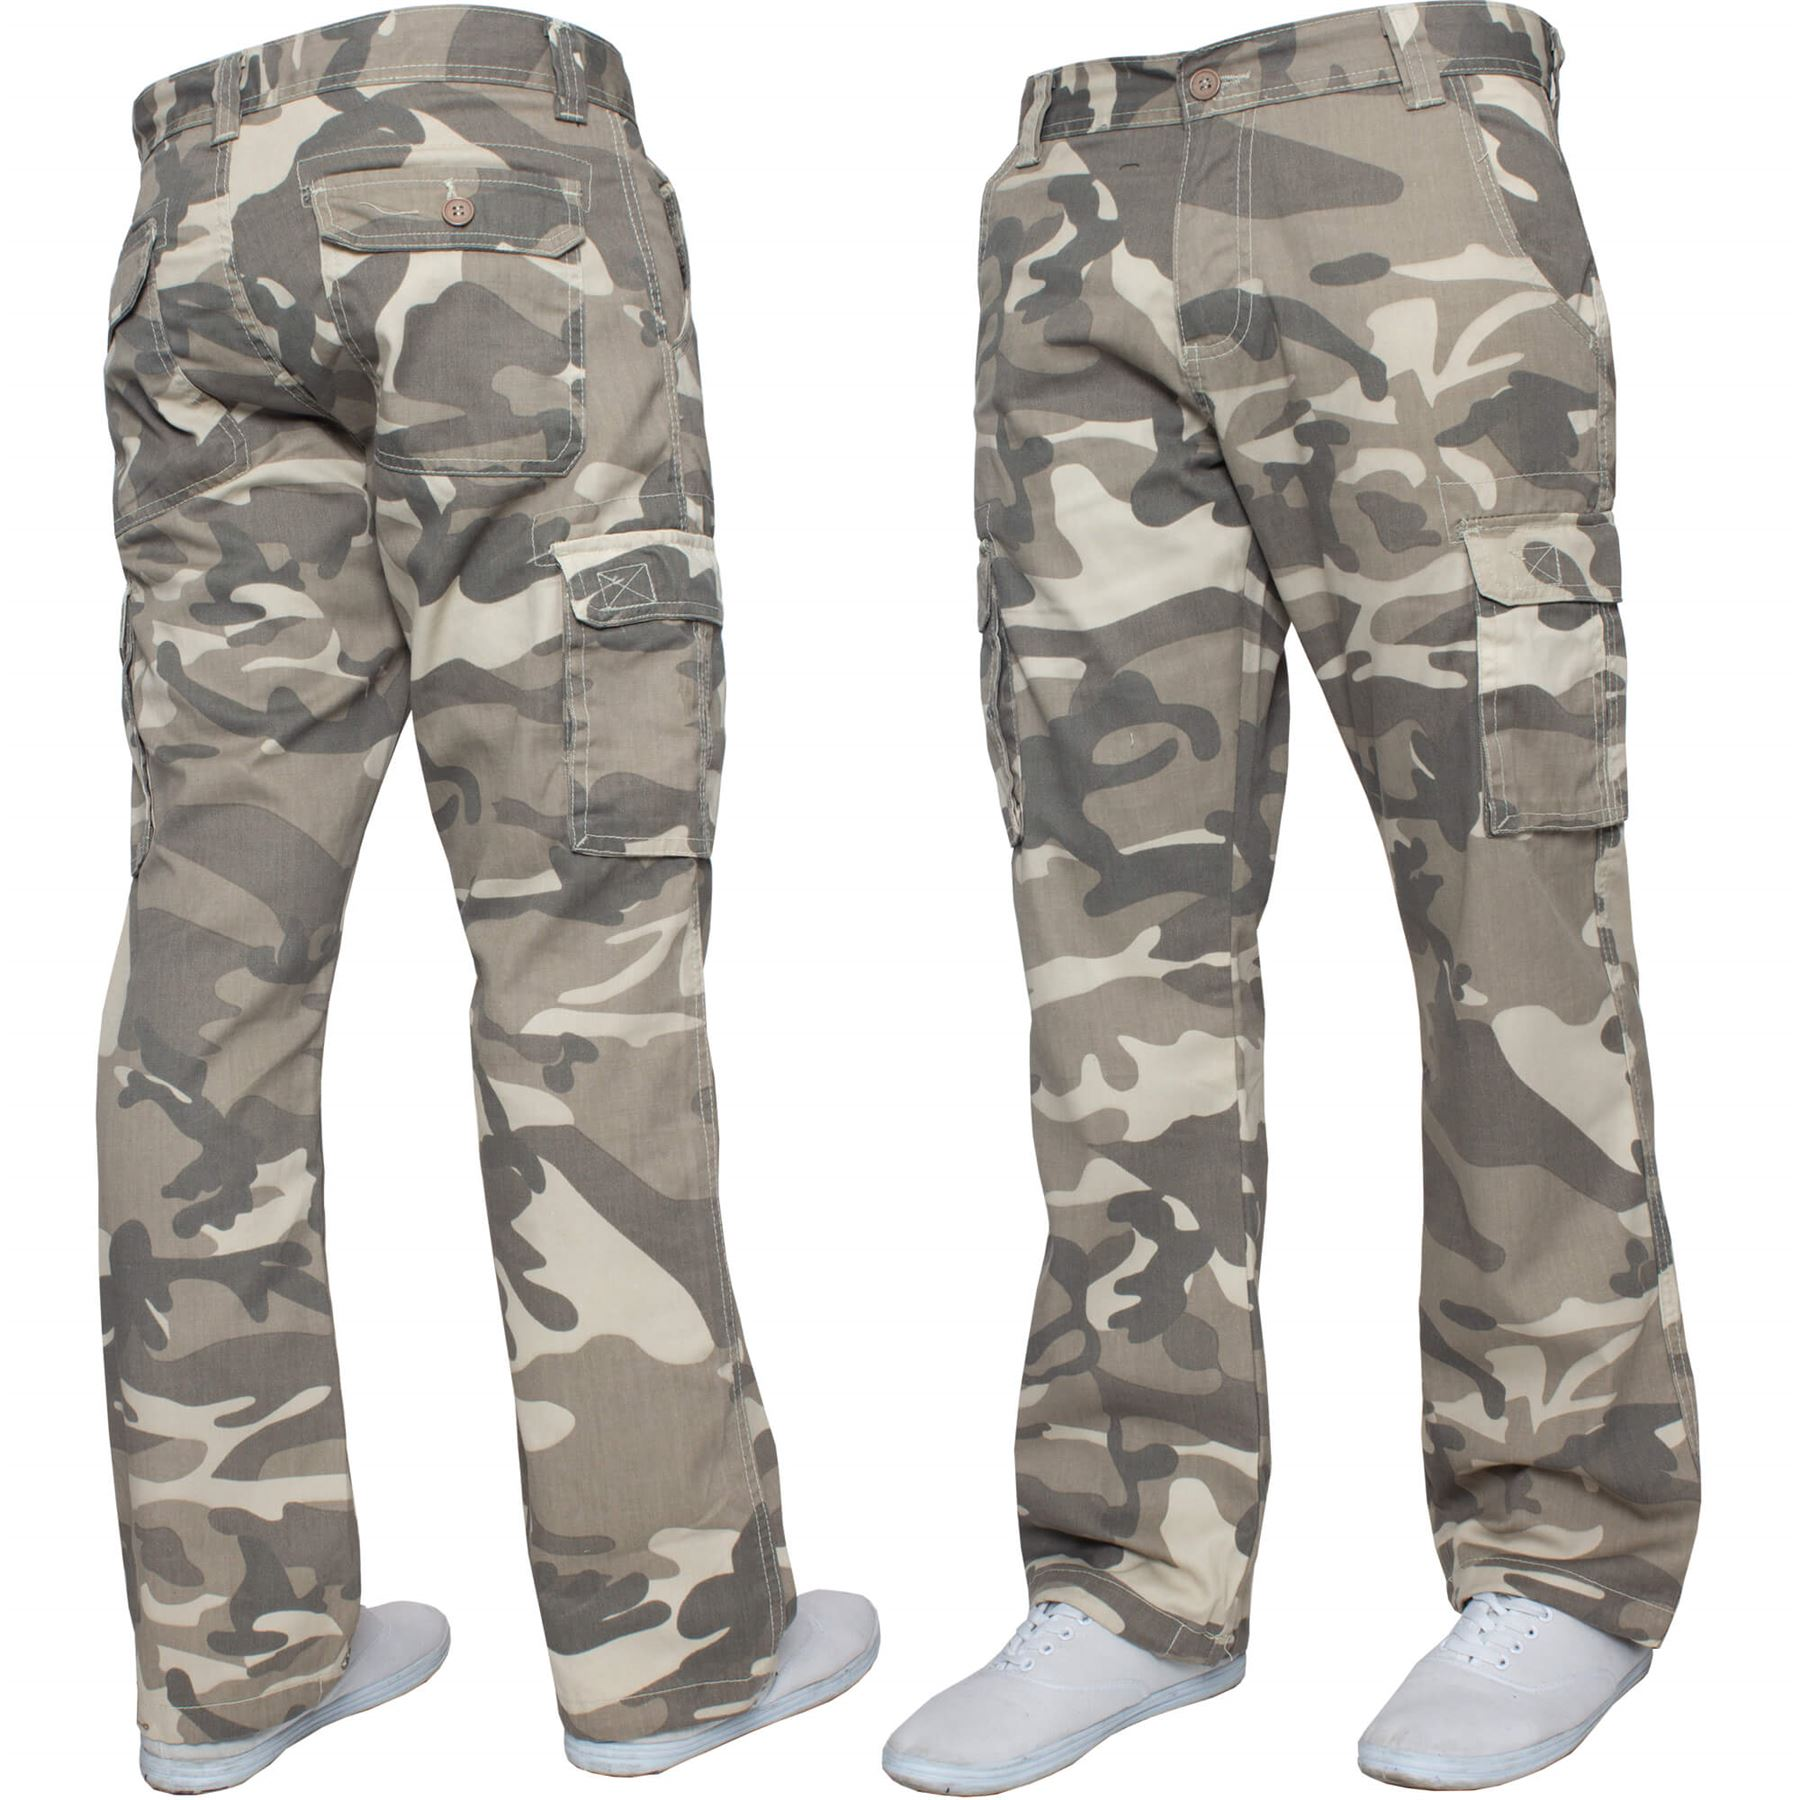 Kruze Mens Combat Cargo Trousers Camouflage Green Camo Summer Pants All Waist